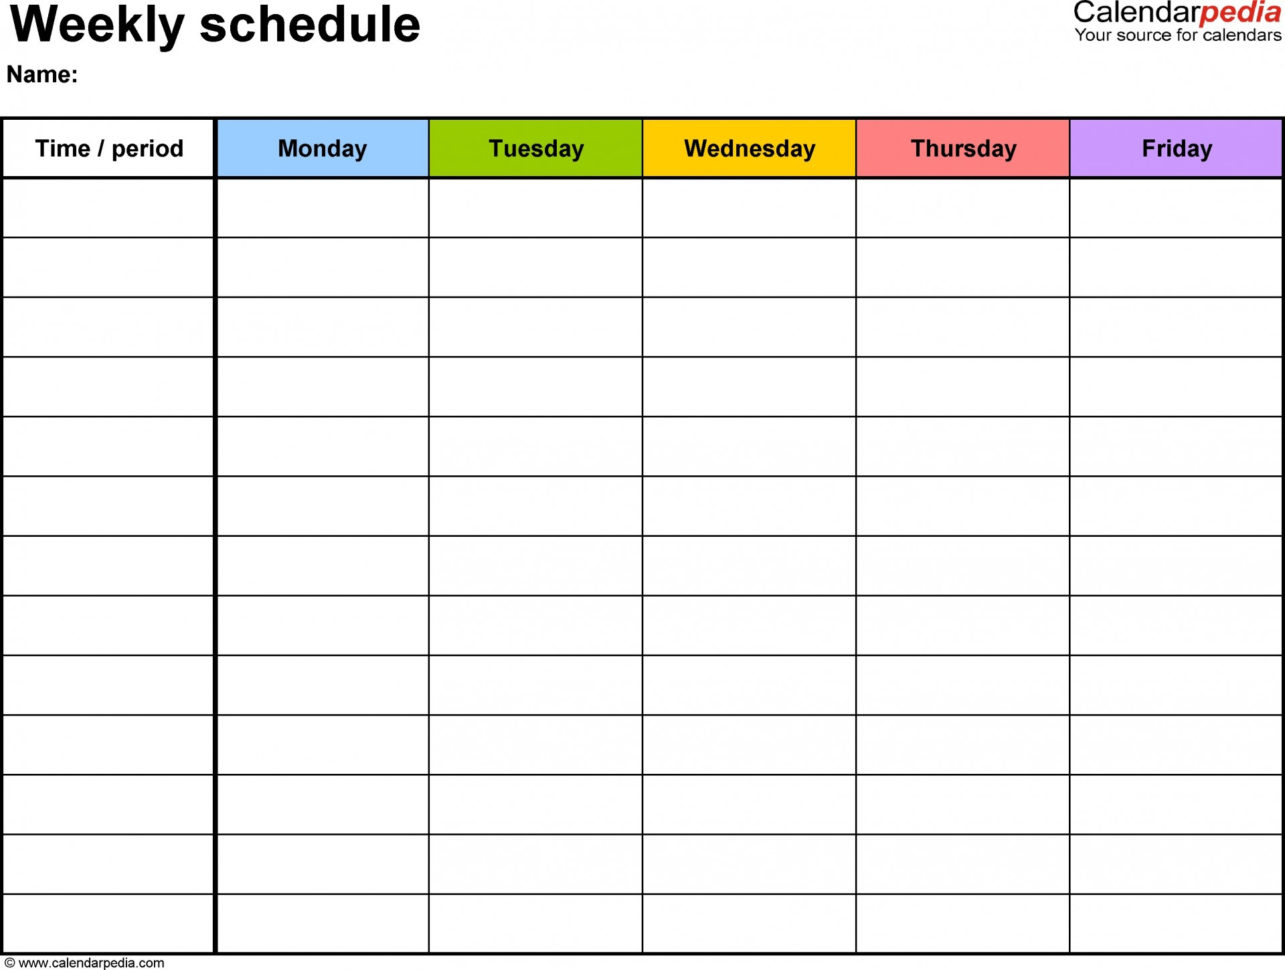 Medication Schedule Spreadsheet In 014 Daily Medication Schedule Template Spreadsheet Awesome Monthly